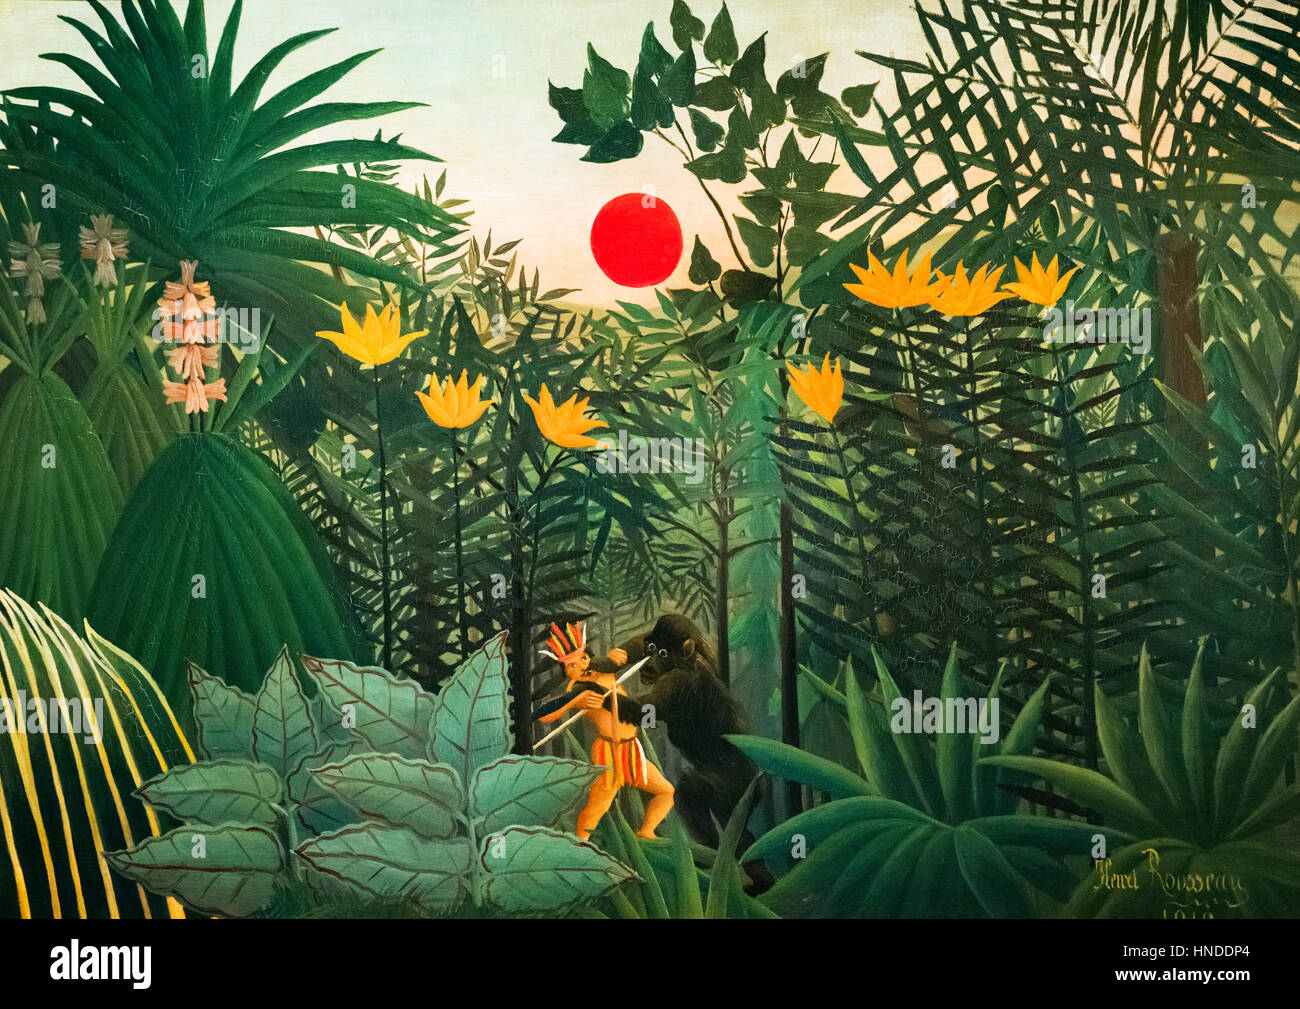 Henri Rousseau painting. 'Tropical Landscape: American Indian Struggling with a Gorilla'  by Henri Rousseau - Stock Image